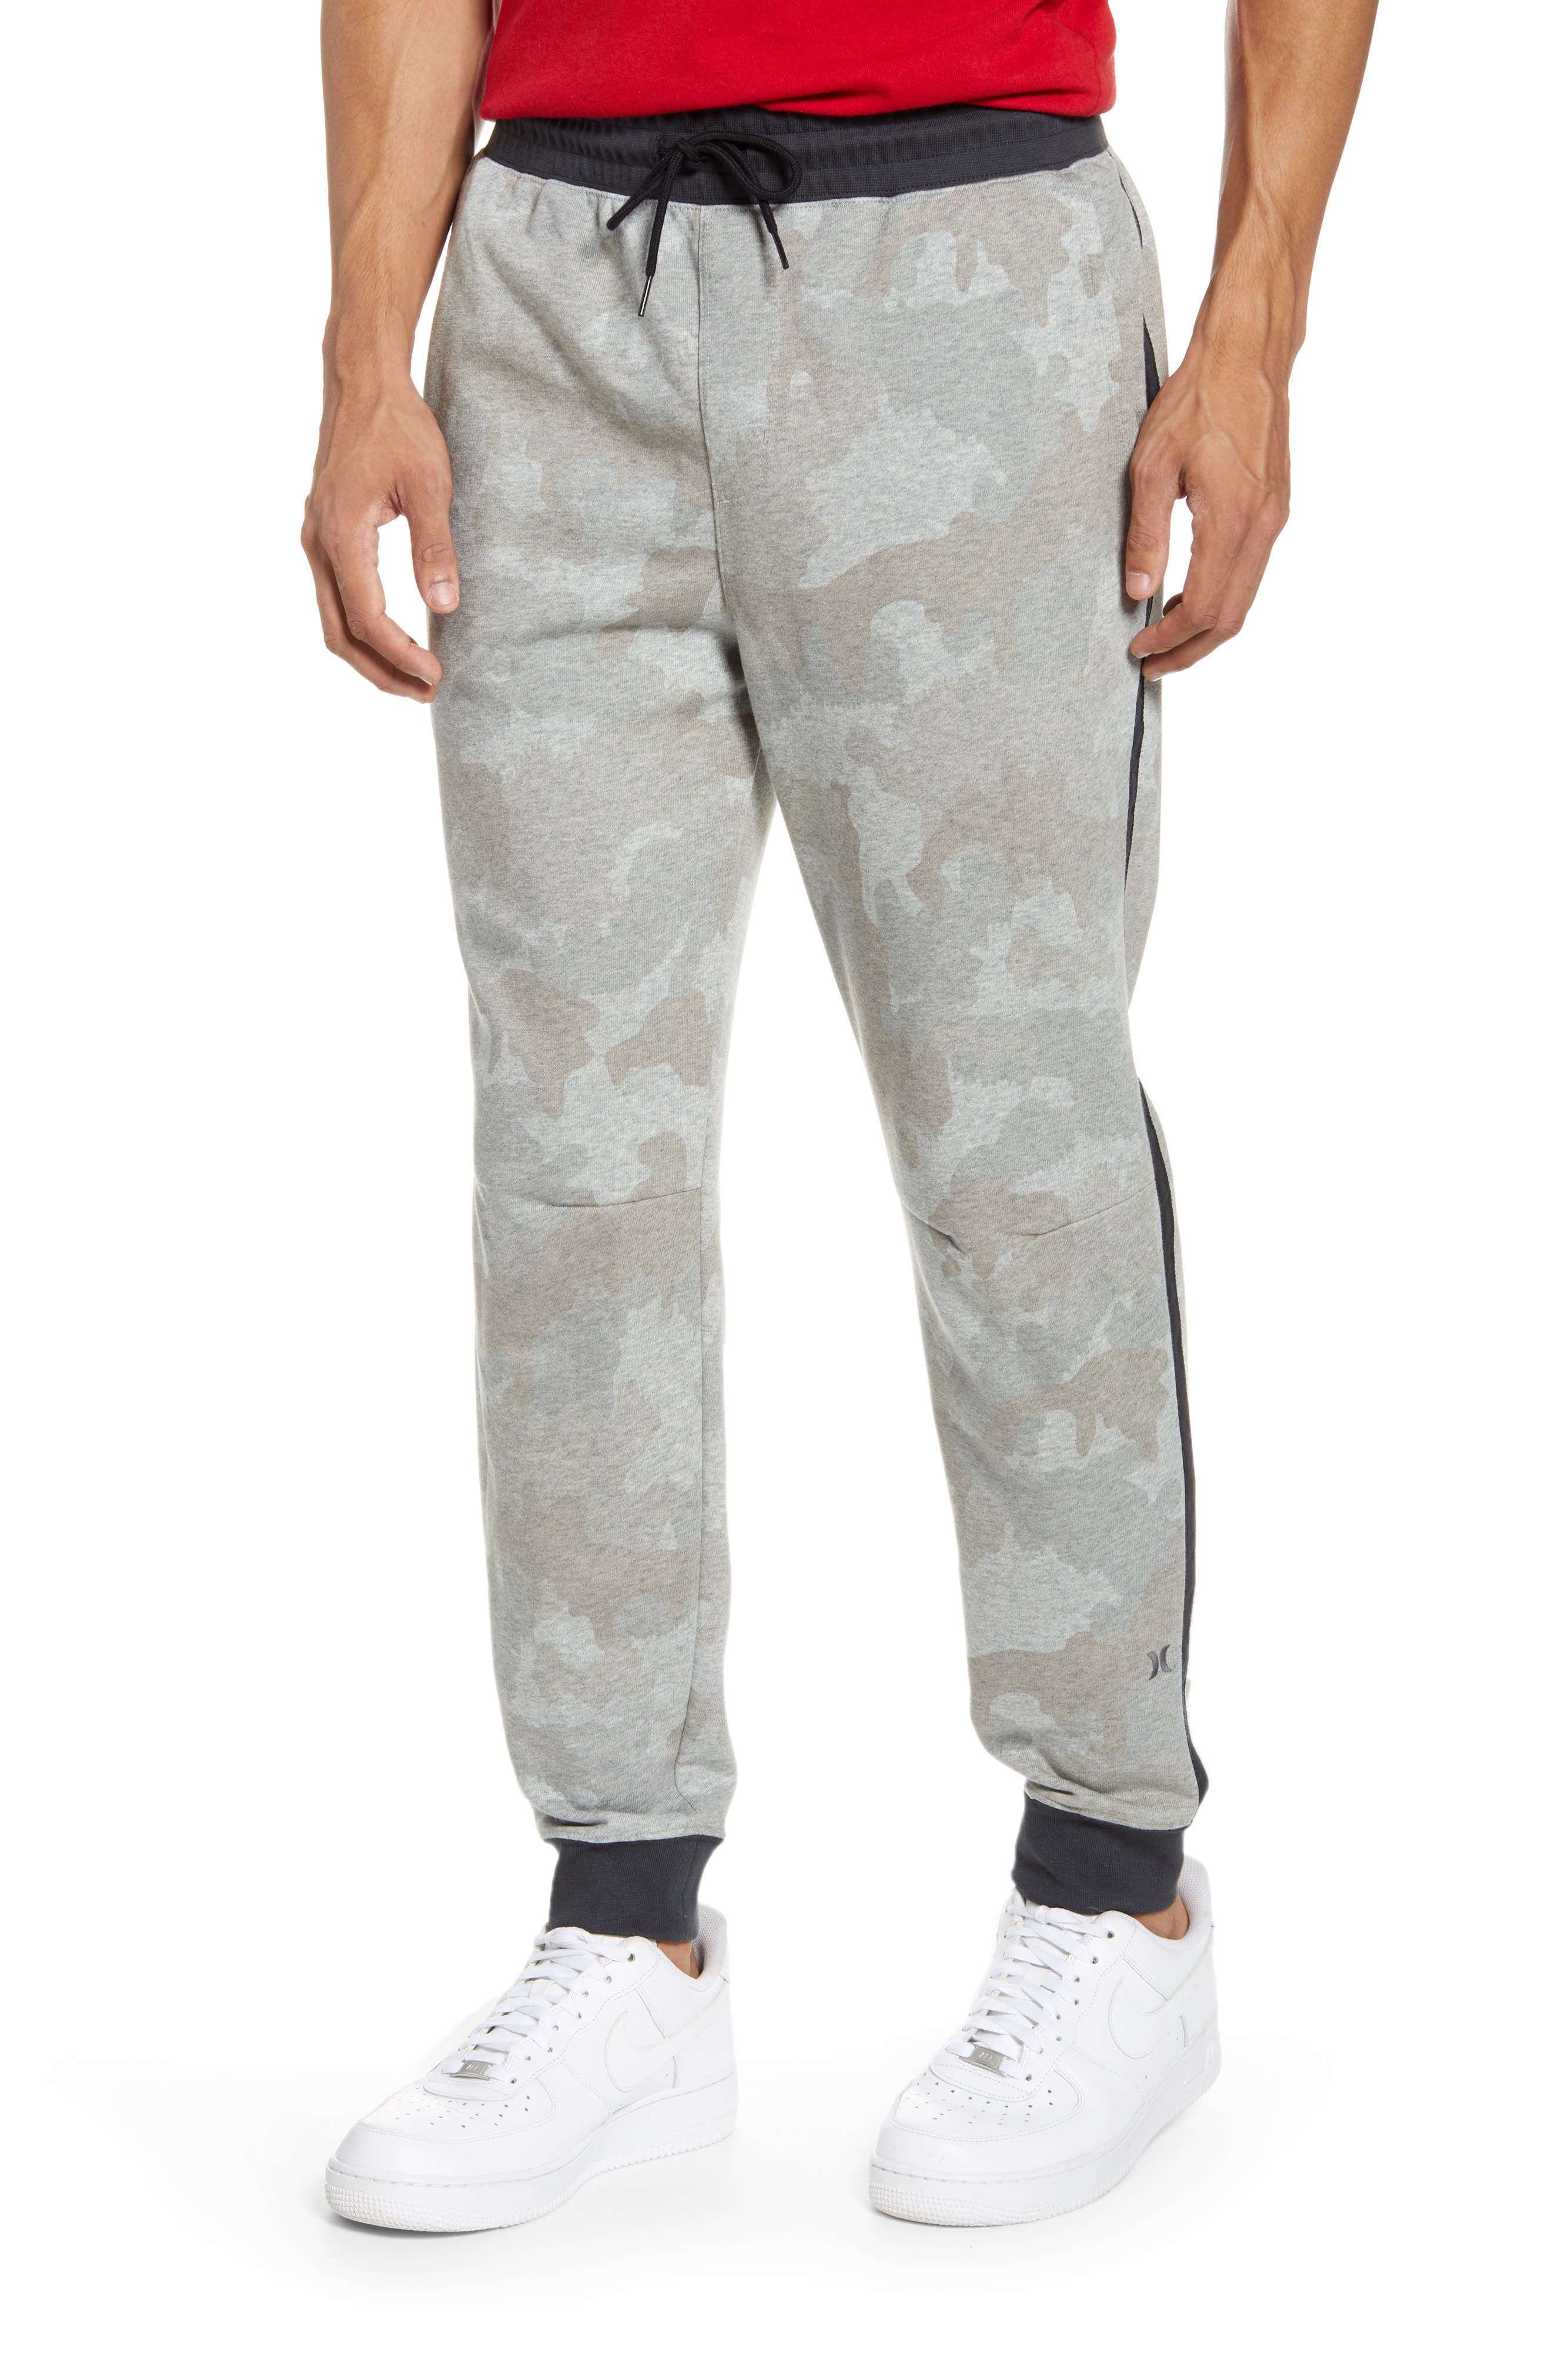 Men's Hurley Dri-Fit Naturals Performance Sweatpants